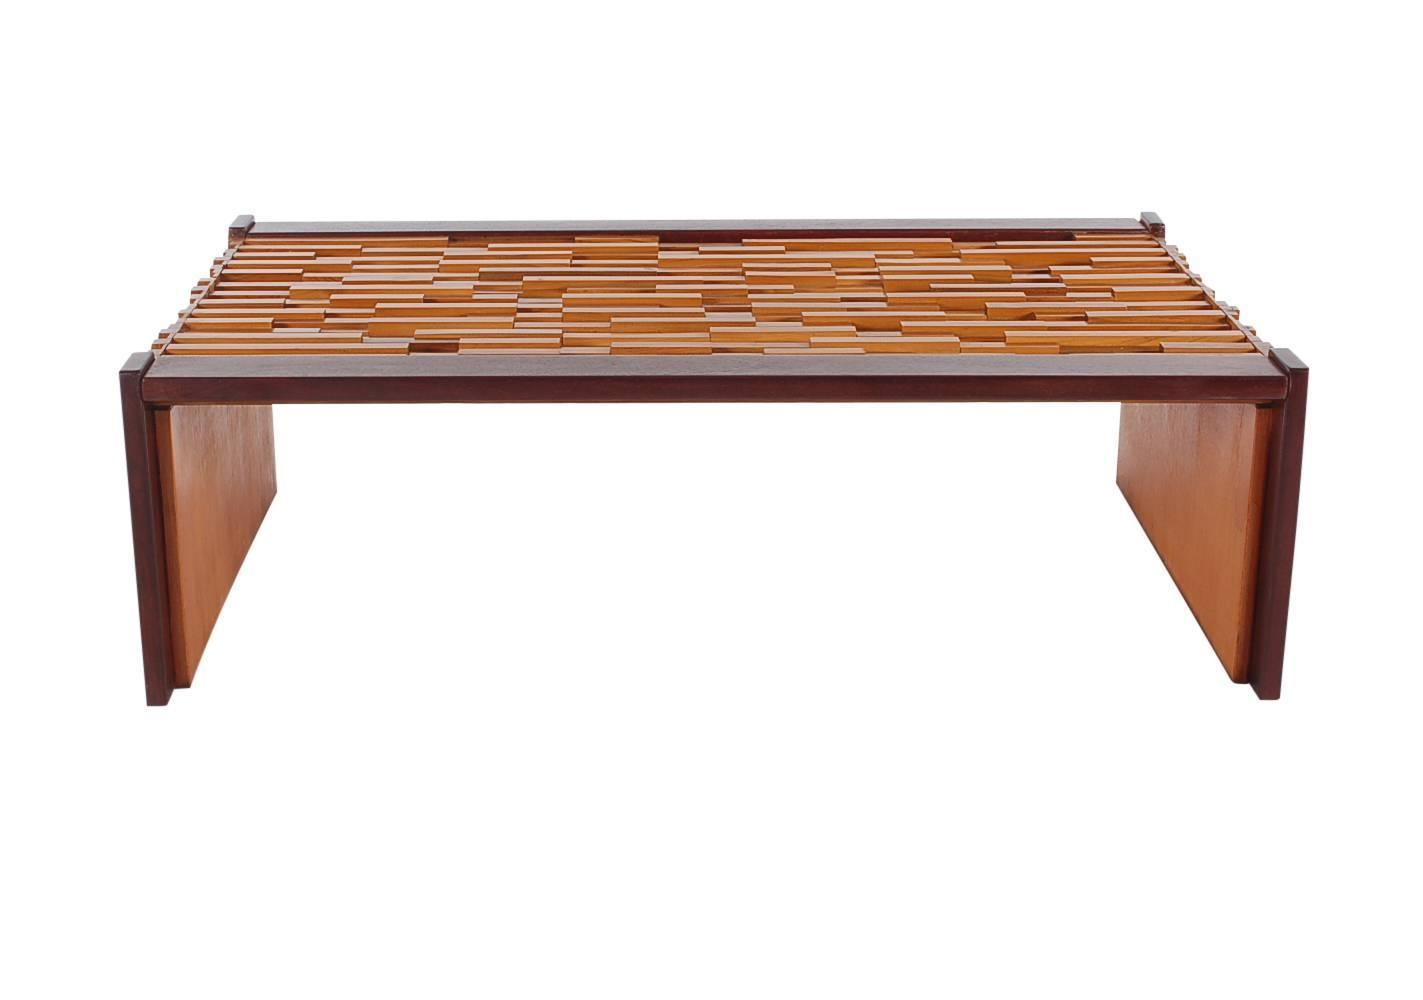 Mid century modern percival lafer brazilian rosewood cocktail table for sale at 1stdibs - Brazilian mid century modern furniture ...